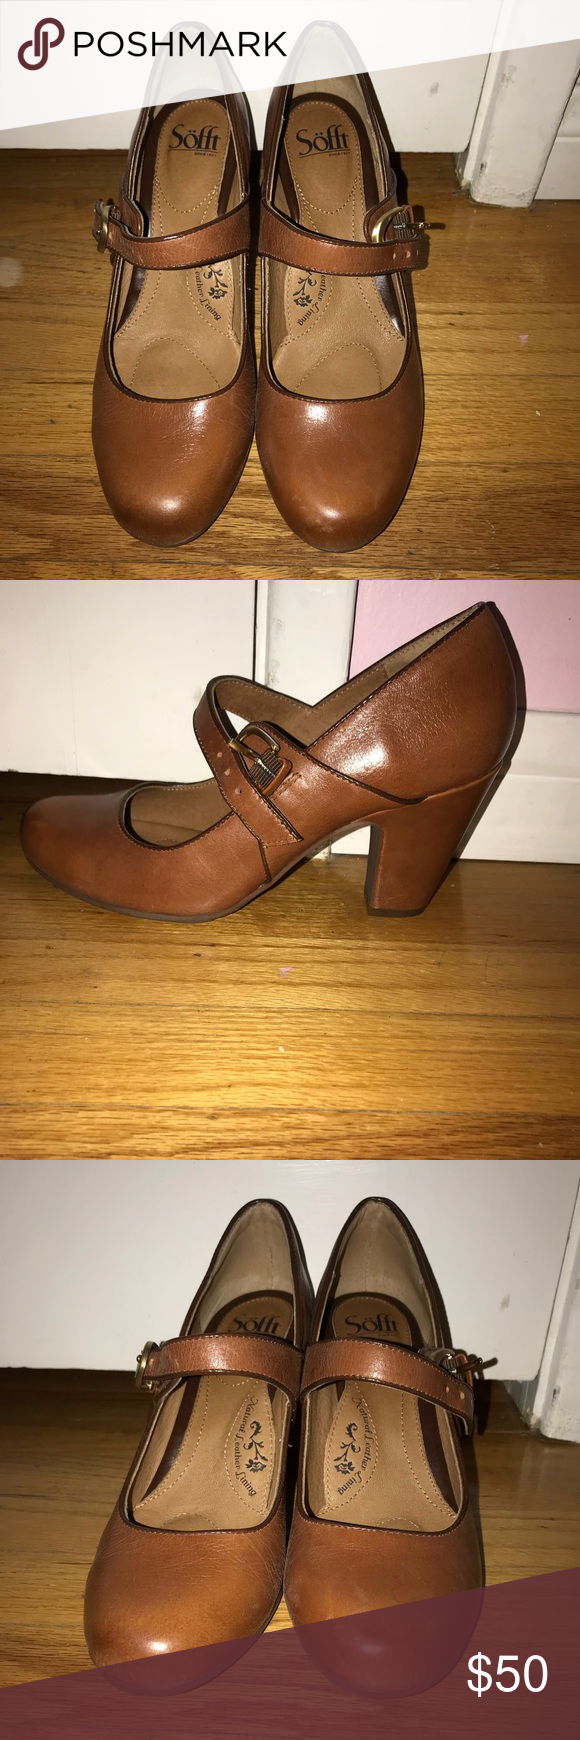 97fb3e8338cd Sofft shoes Miranda cork sturdy brown Worn once great shoes but cleaning  out my closet Sofft Shoes Heels